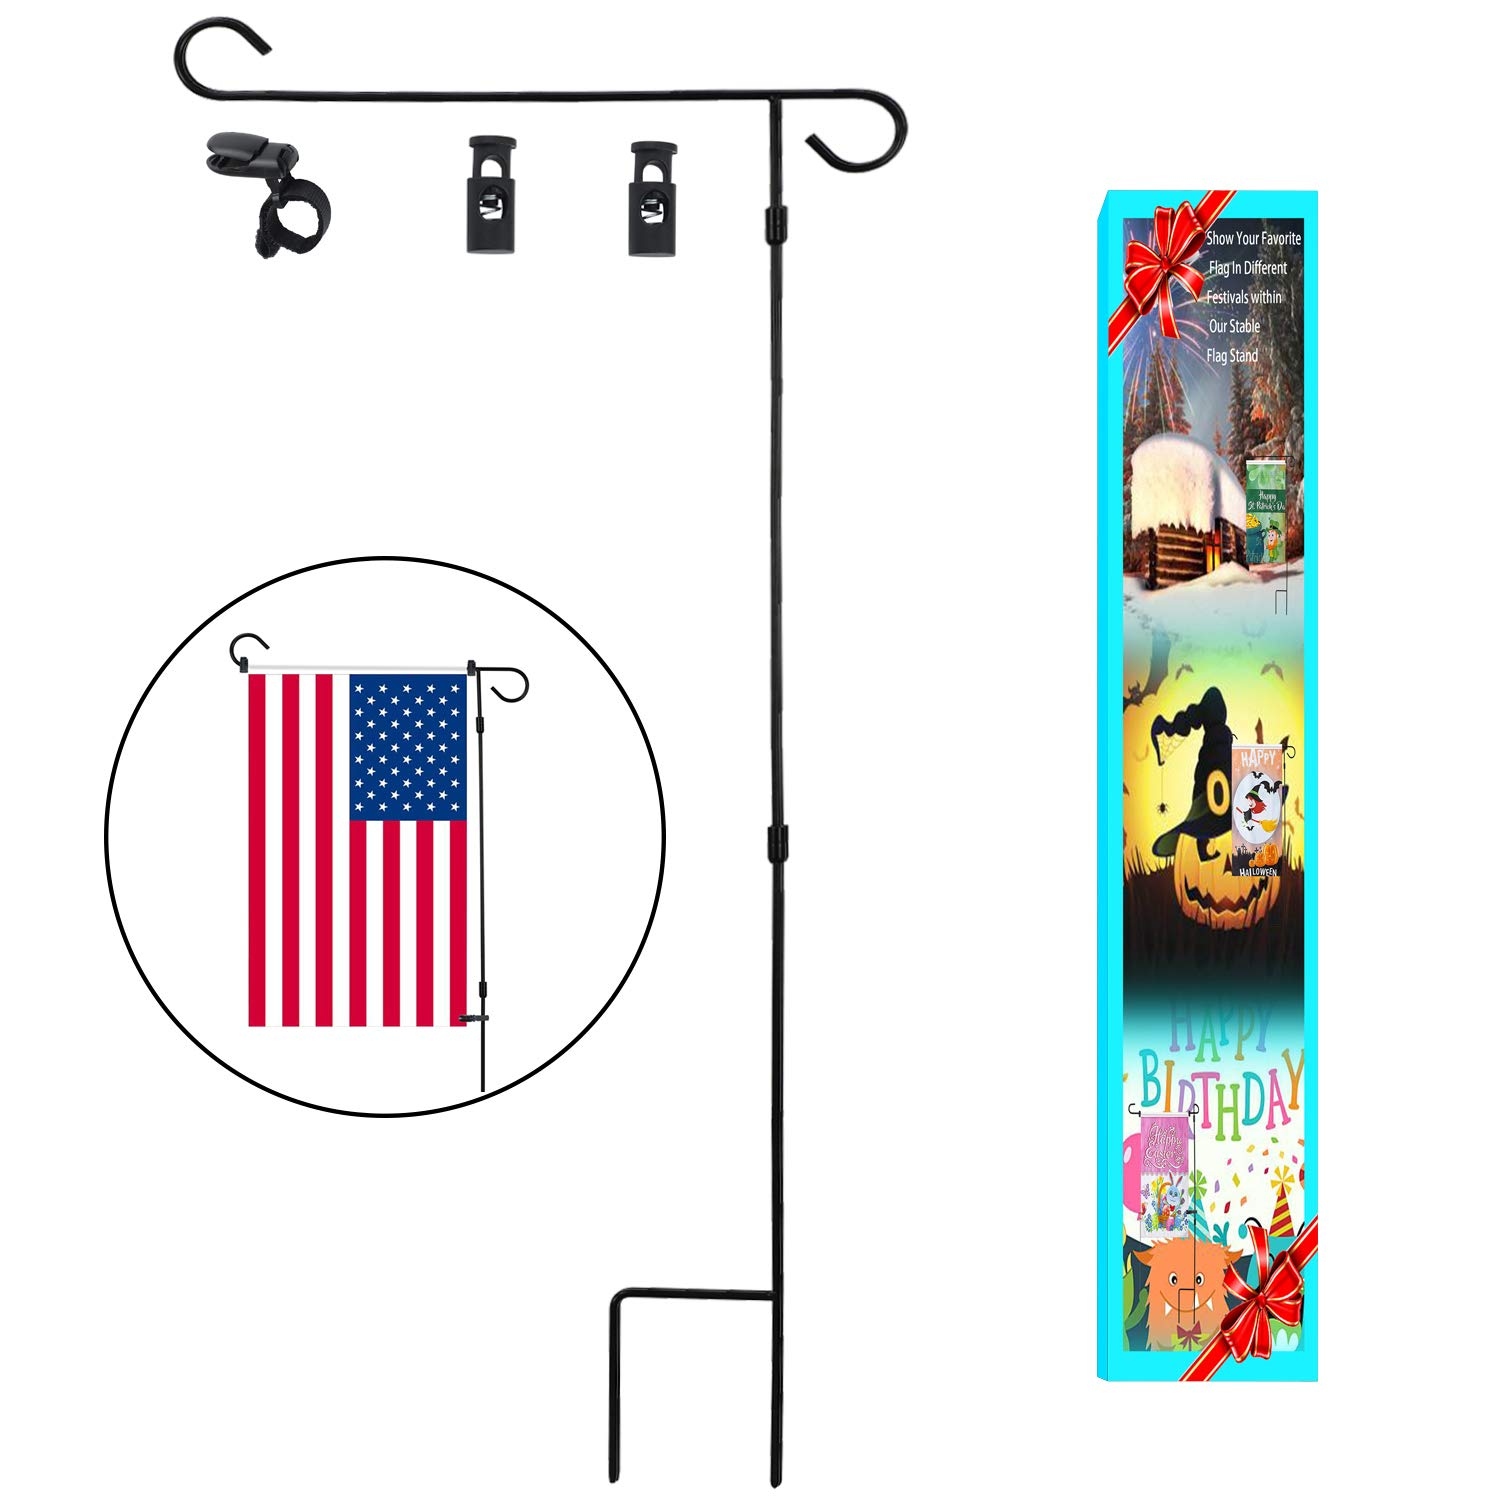 HOOSUN Garden Flag Stand Holder Pole Easy to Install Strong Sturdy Wrought Iron 36'' x 18'' Fits 12.5'' x 18'' Mini Flag with 1 Tiger Anti-Wind Clip 2 Anti-Wind Spring Stoppers